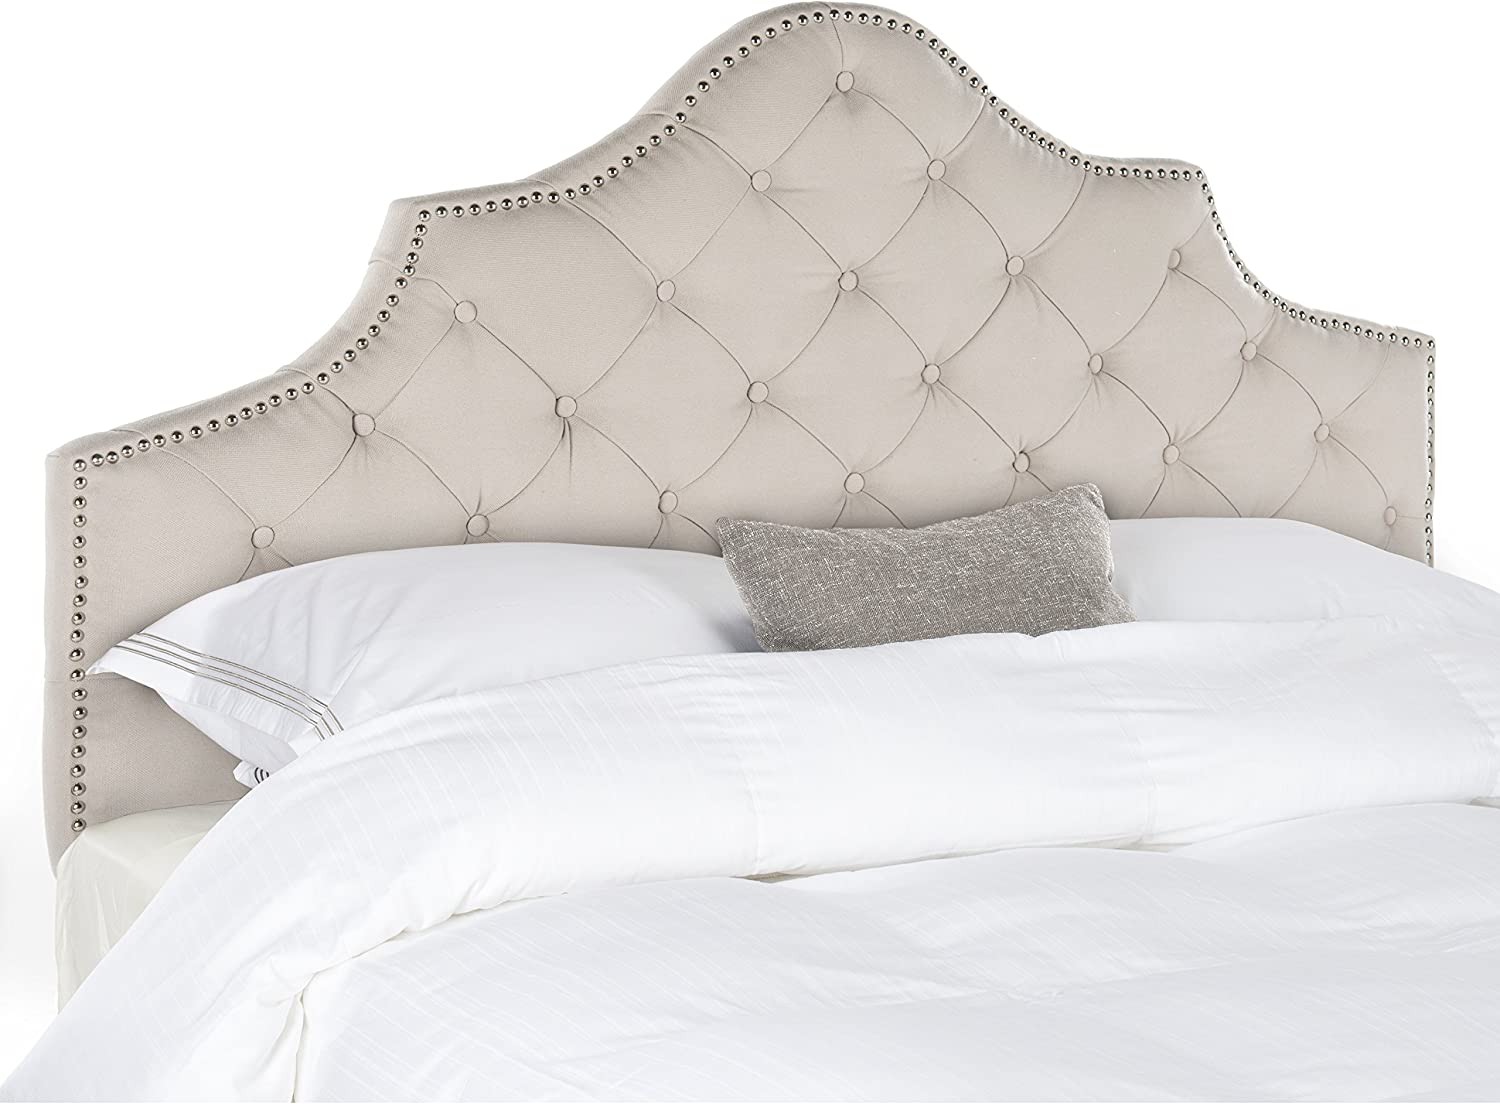 Safavieh Arebelle Taupe Linen Upholstered Tufted Headboard – Silver Nailhead King